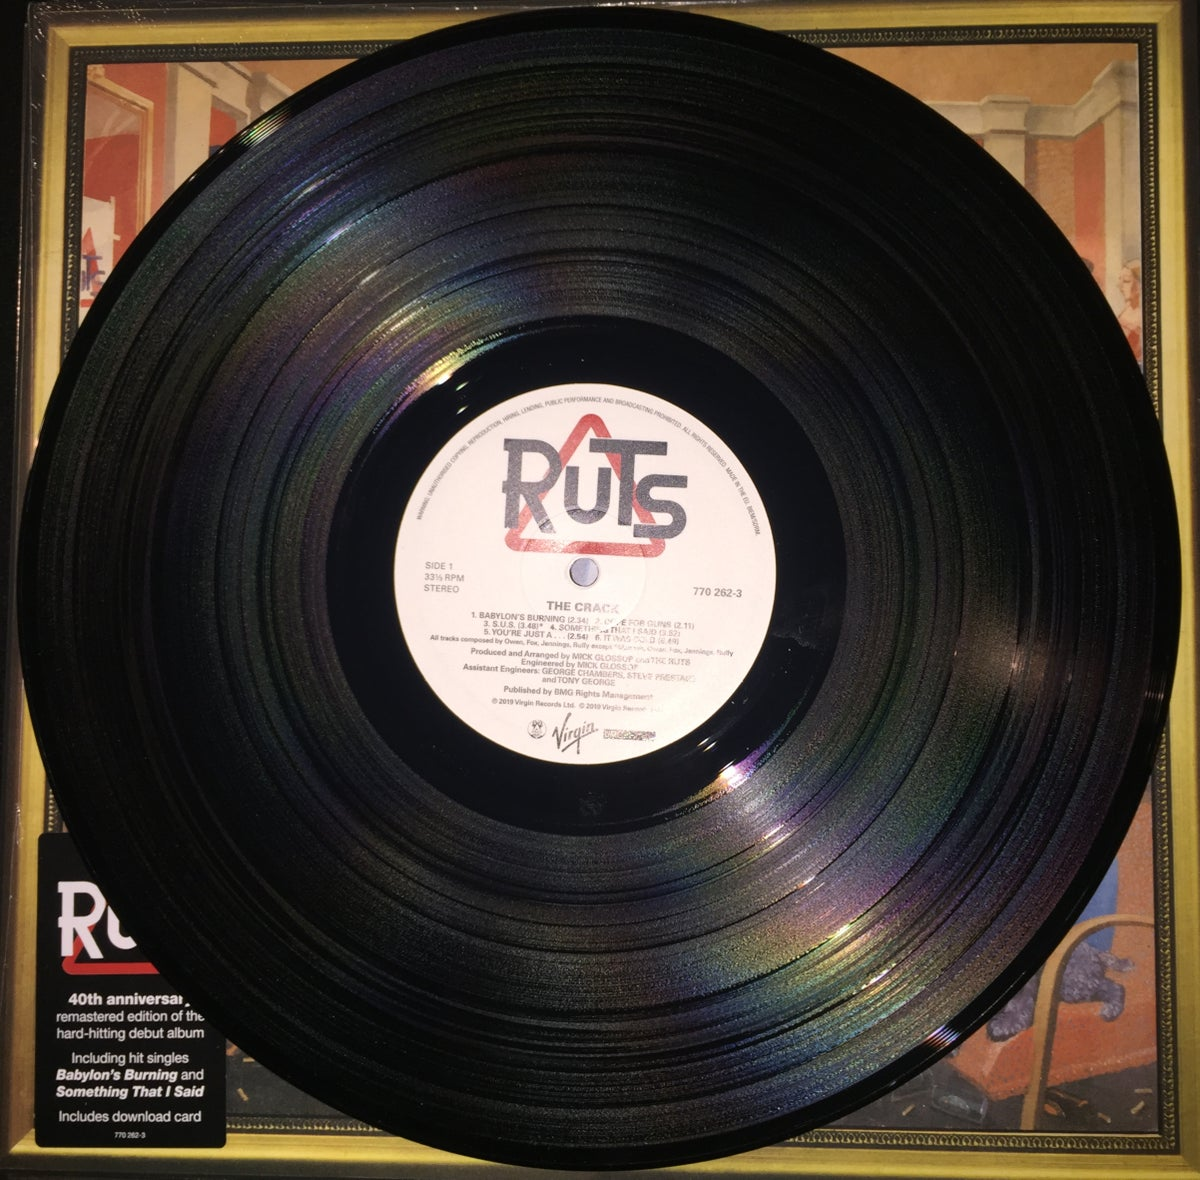 Image of Ruts 'The Crack' Vinyl LP